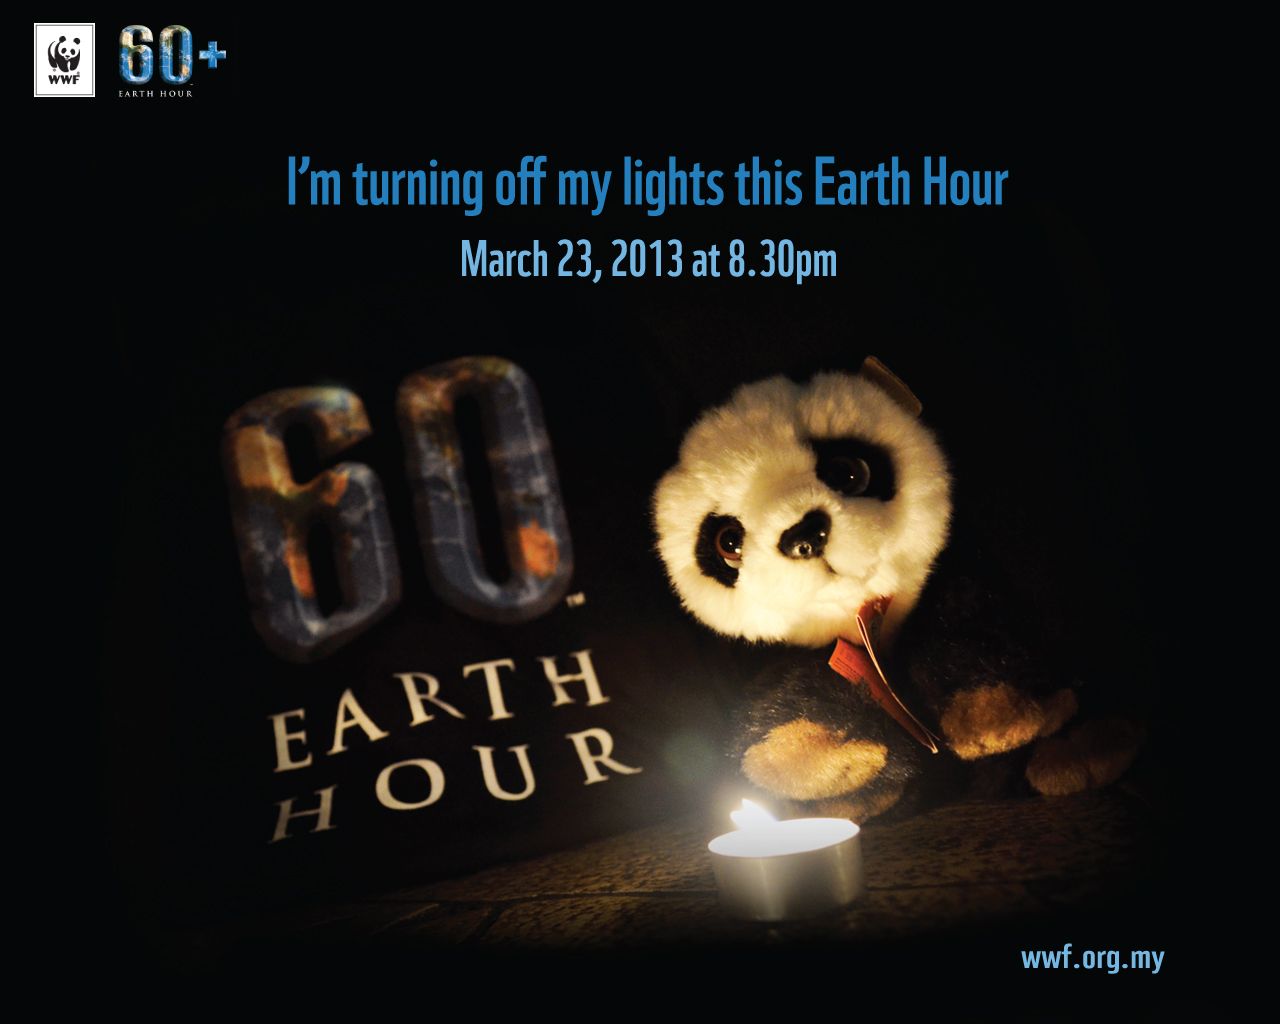 image source: www.wwf.org.my